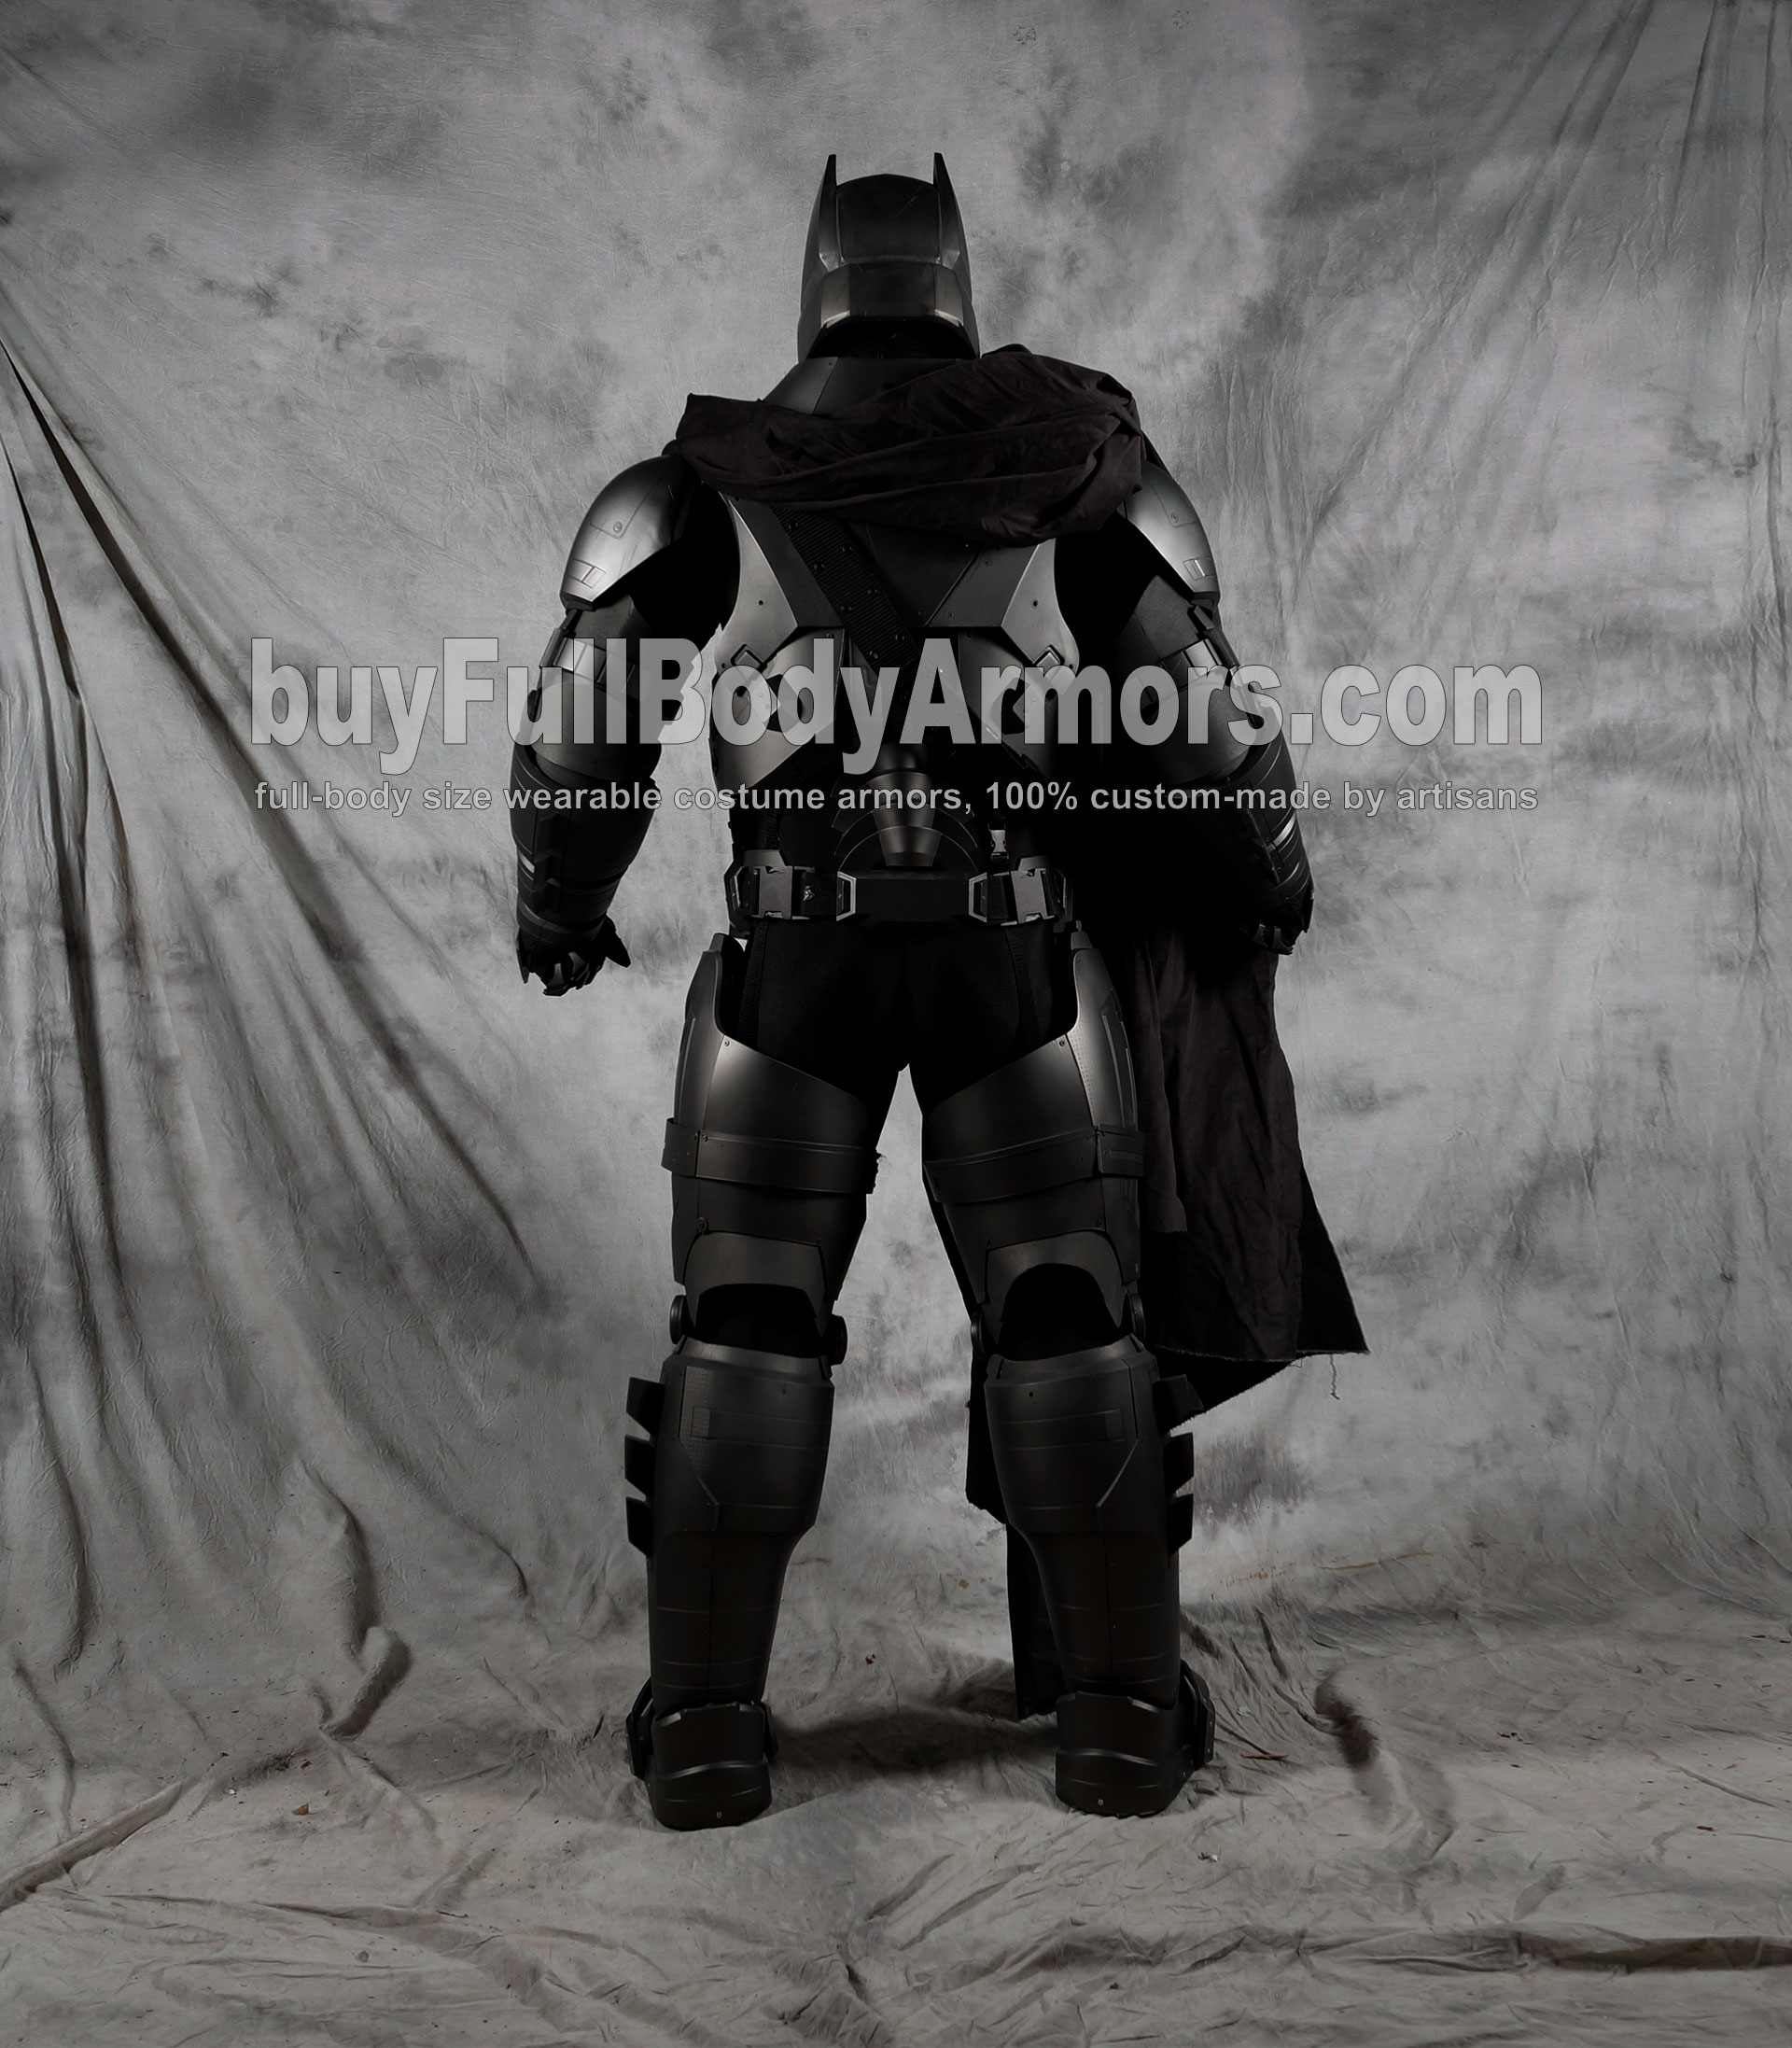 The Wearable Armored Batsuit (Batman armor suit costume) back clear